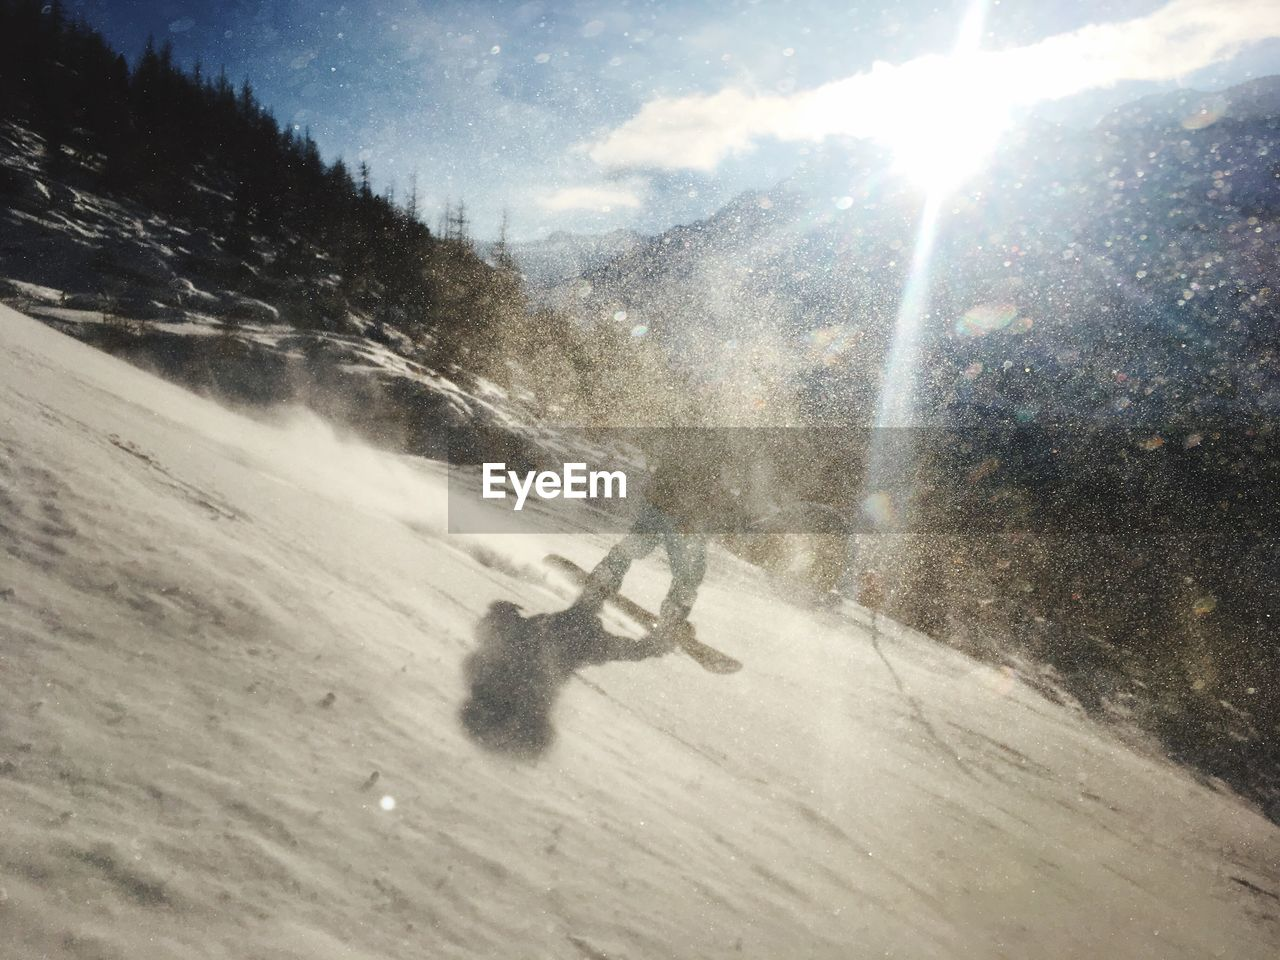 nature, snow, sport, motion, sunlight, winter, day, cold temperature, tree, mountain, winter sport, skiing, leisure activity, beauty in nature, one person, real people, plant, sky, speed, lens flare, outdoors, snowing